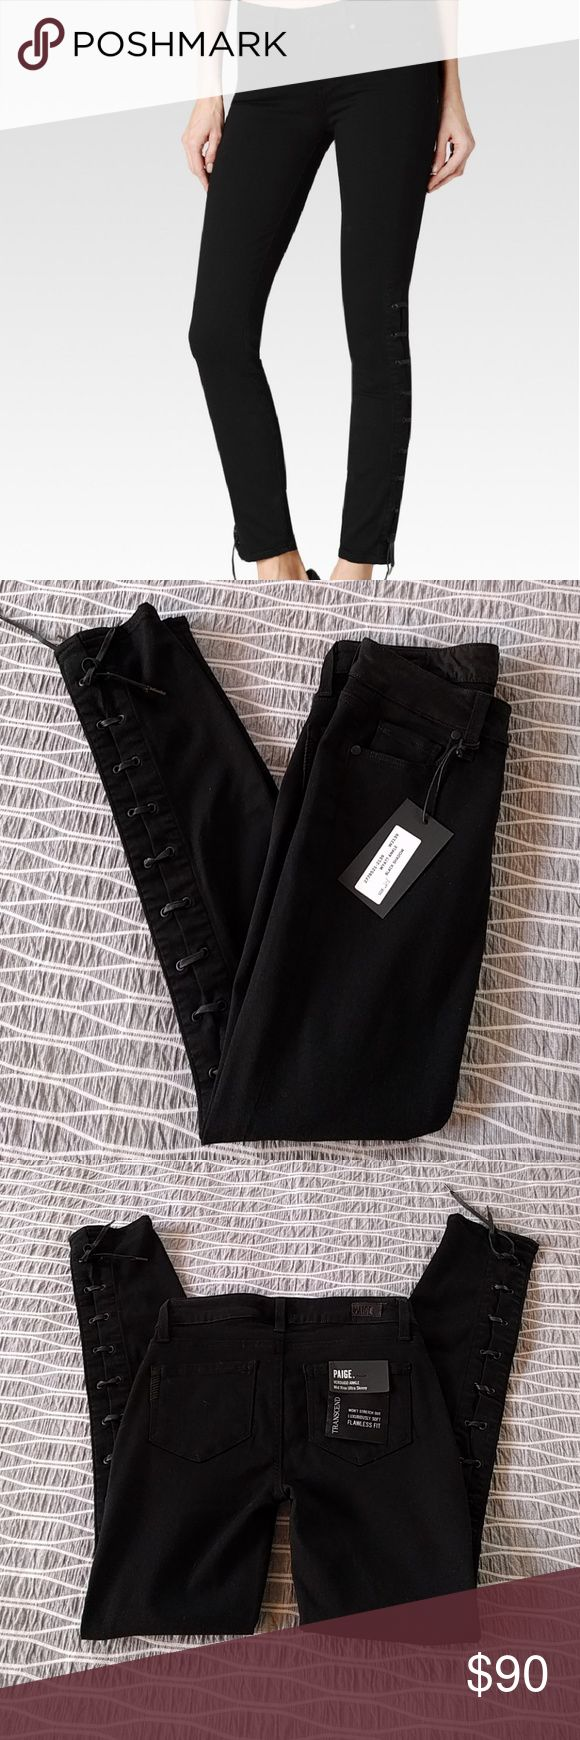 "NWT black skinny jeans - Paige NWT Paige Wyatt. Sadly these are too small for me.the Wyatt Ankle jean features our innovative, TRANSCEND fiber technology that promises a luxuriously soft feel, comfortable fit and unyielding support. Showcasing a romantic, lace-up detailing that gracefully stretches from the ankle to the high knee, this jean is designed with a slim fit and delicate charm. Mid rise and ankle length, this pant updates any outfit with a vintage beauty.""  Now on sale for $134…"